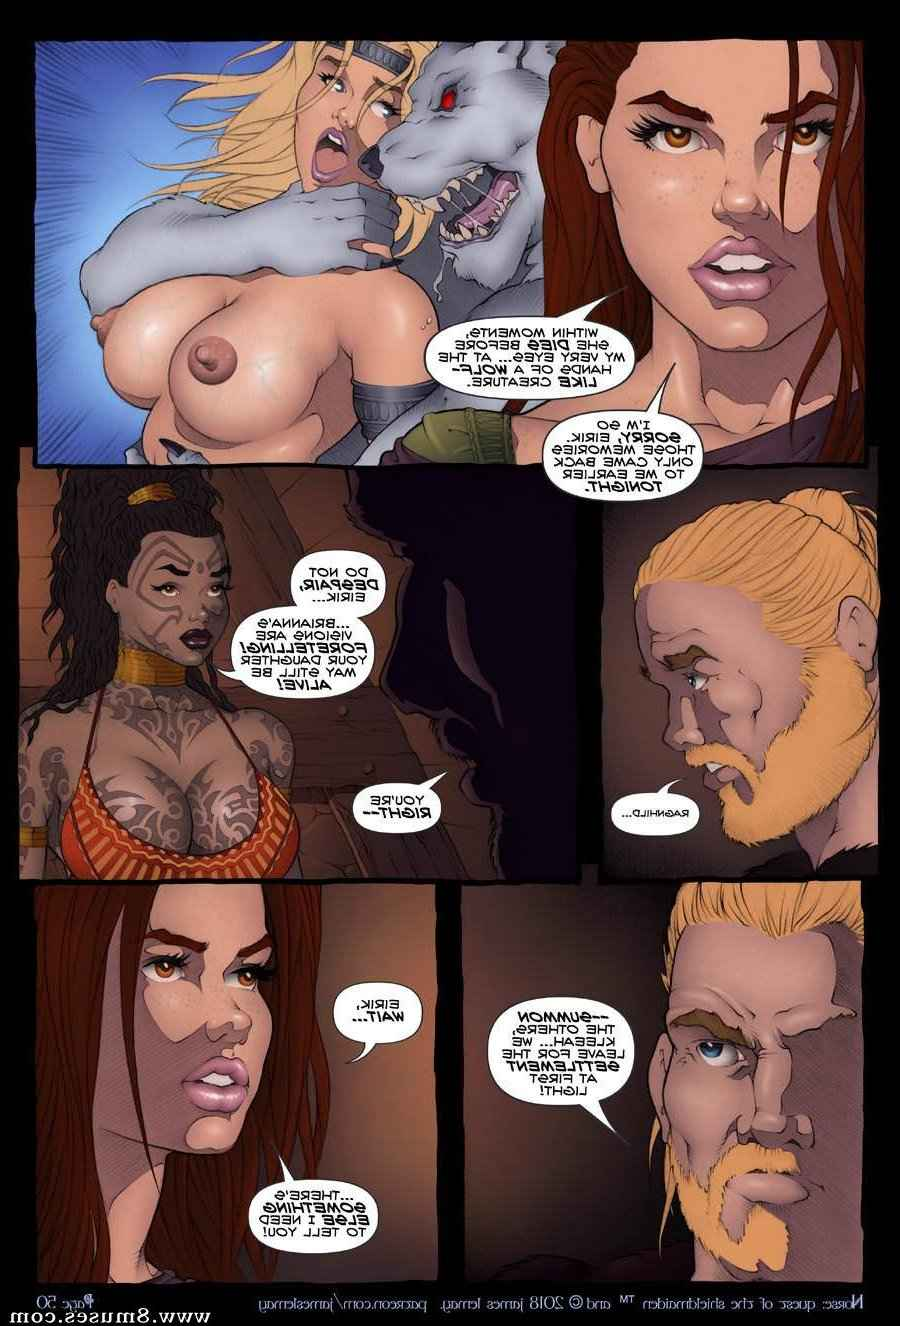 James-Lemay-Comics/Norse-Quest-of-the-Shield-Maiden Norse_Quest_of_the_Shield_Maiden__8muses_-_Sex_and_Porn_Comics_50.jpg